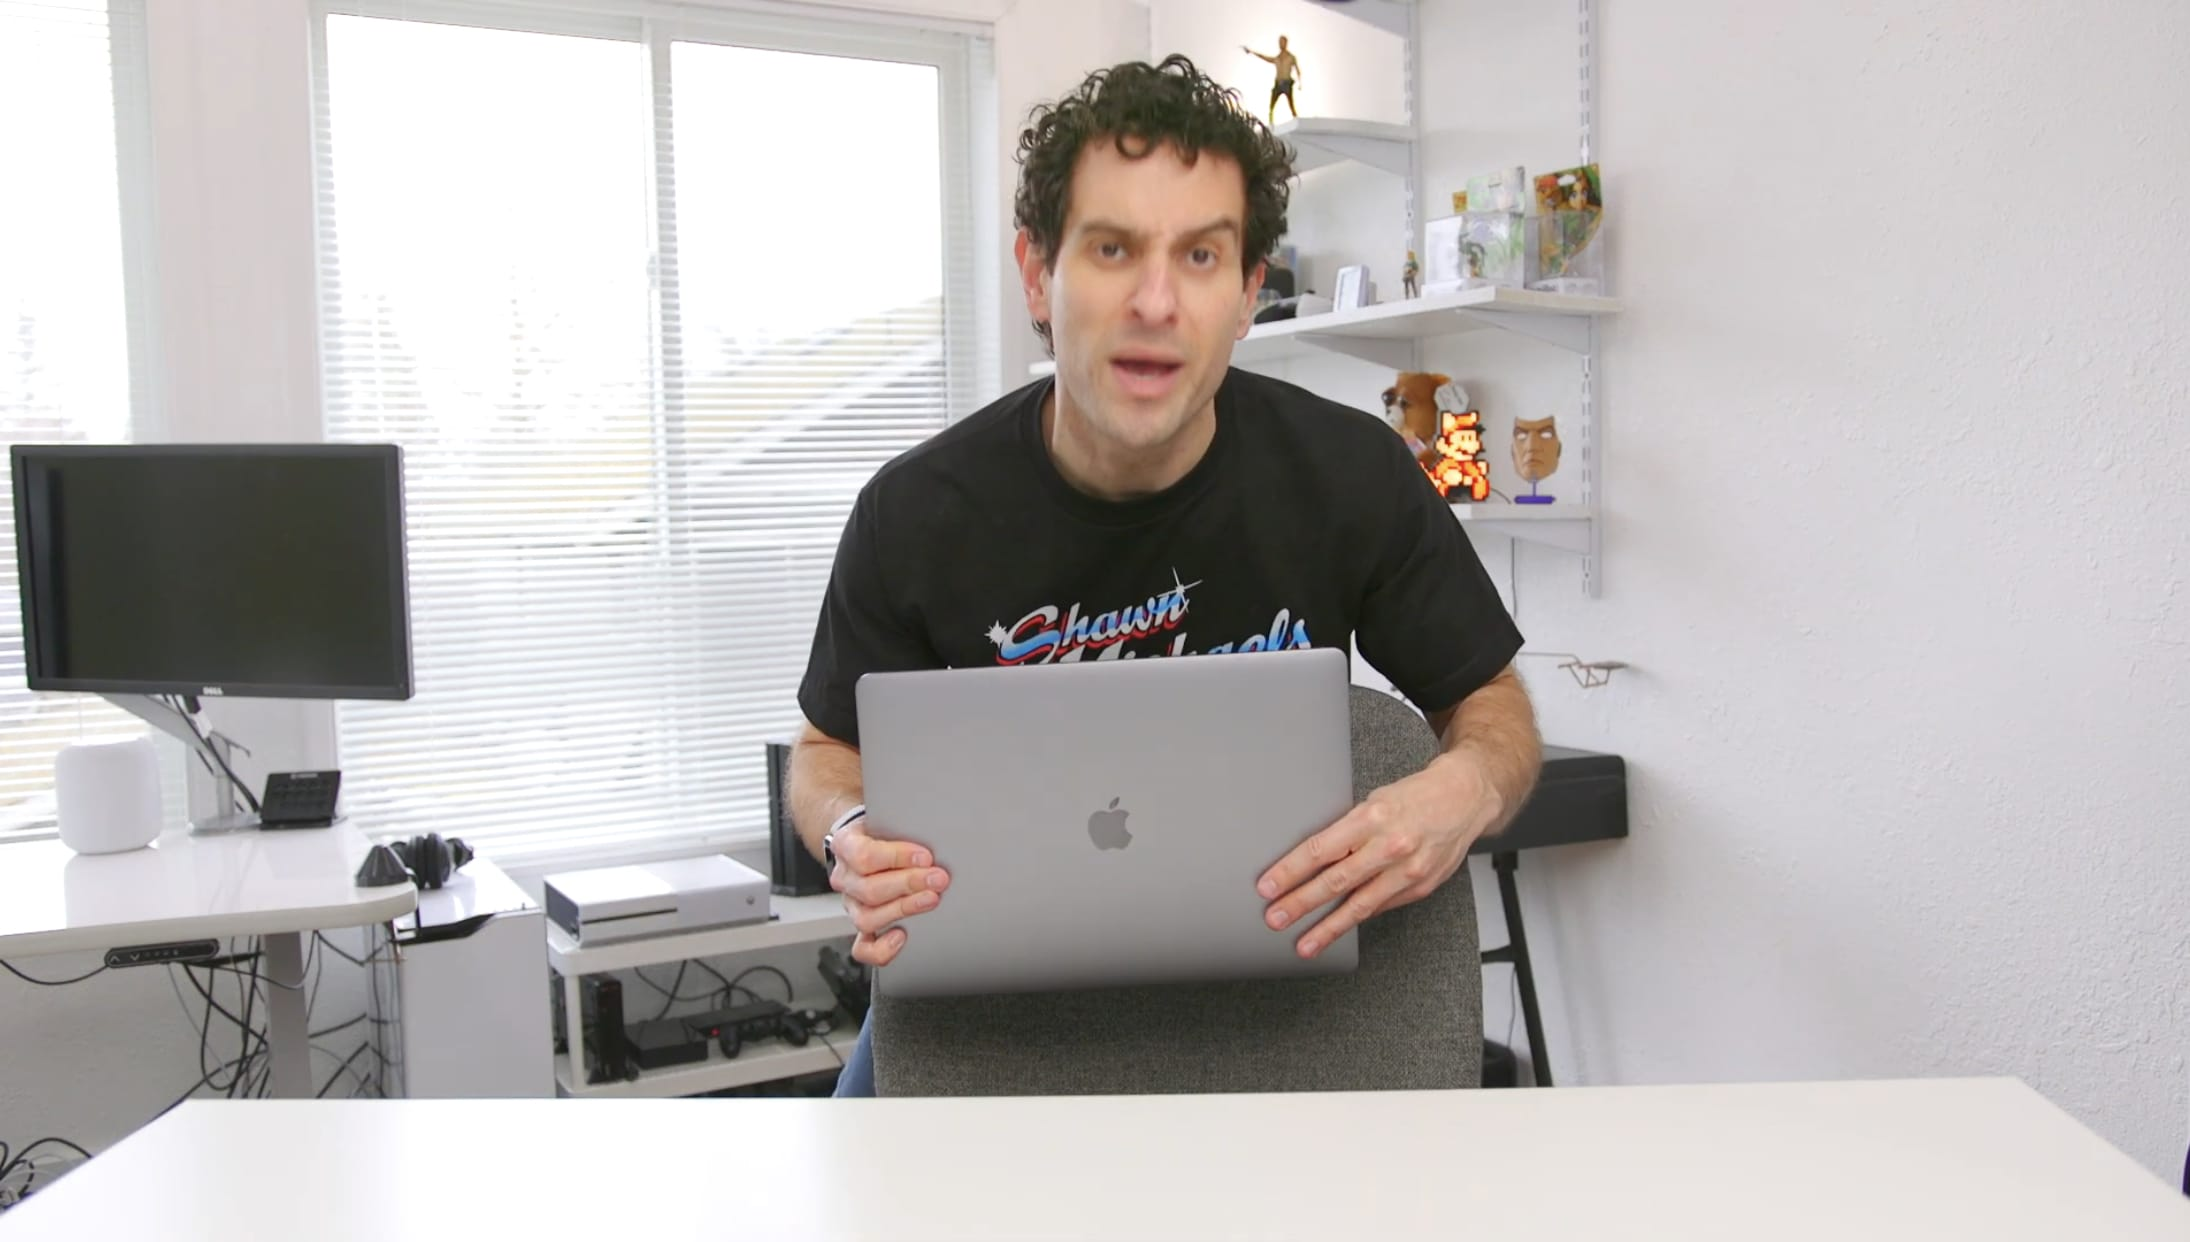 2018 MacBook Pro problems: The CultCast host Erfon Elijah's got a bone to pick with the new Apple laptop.